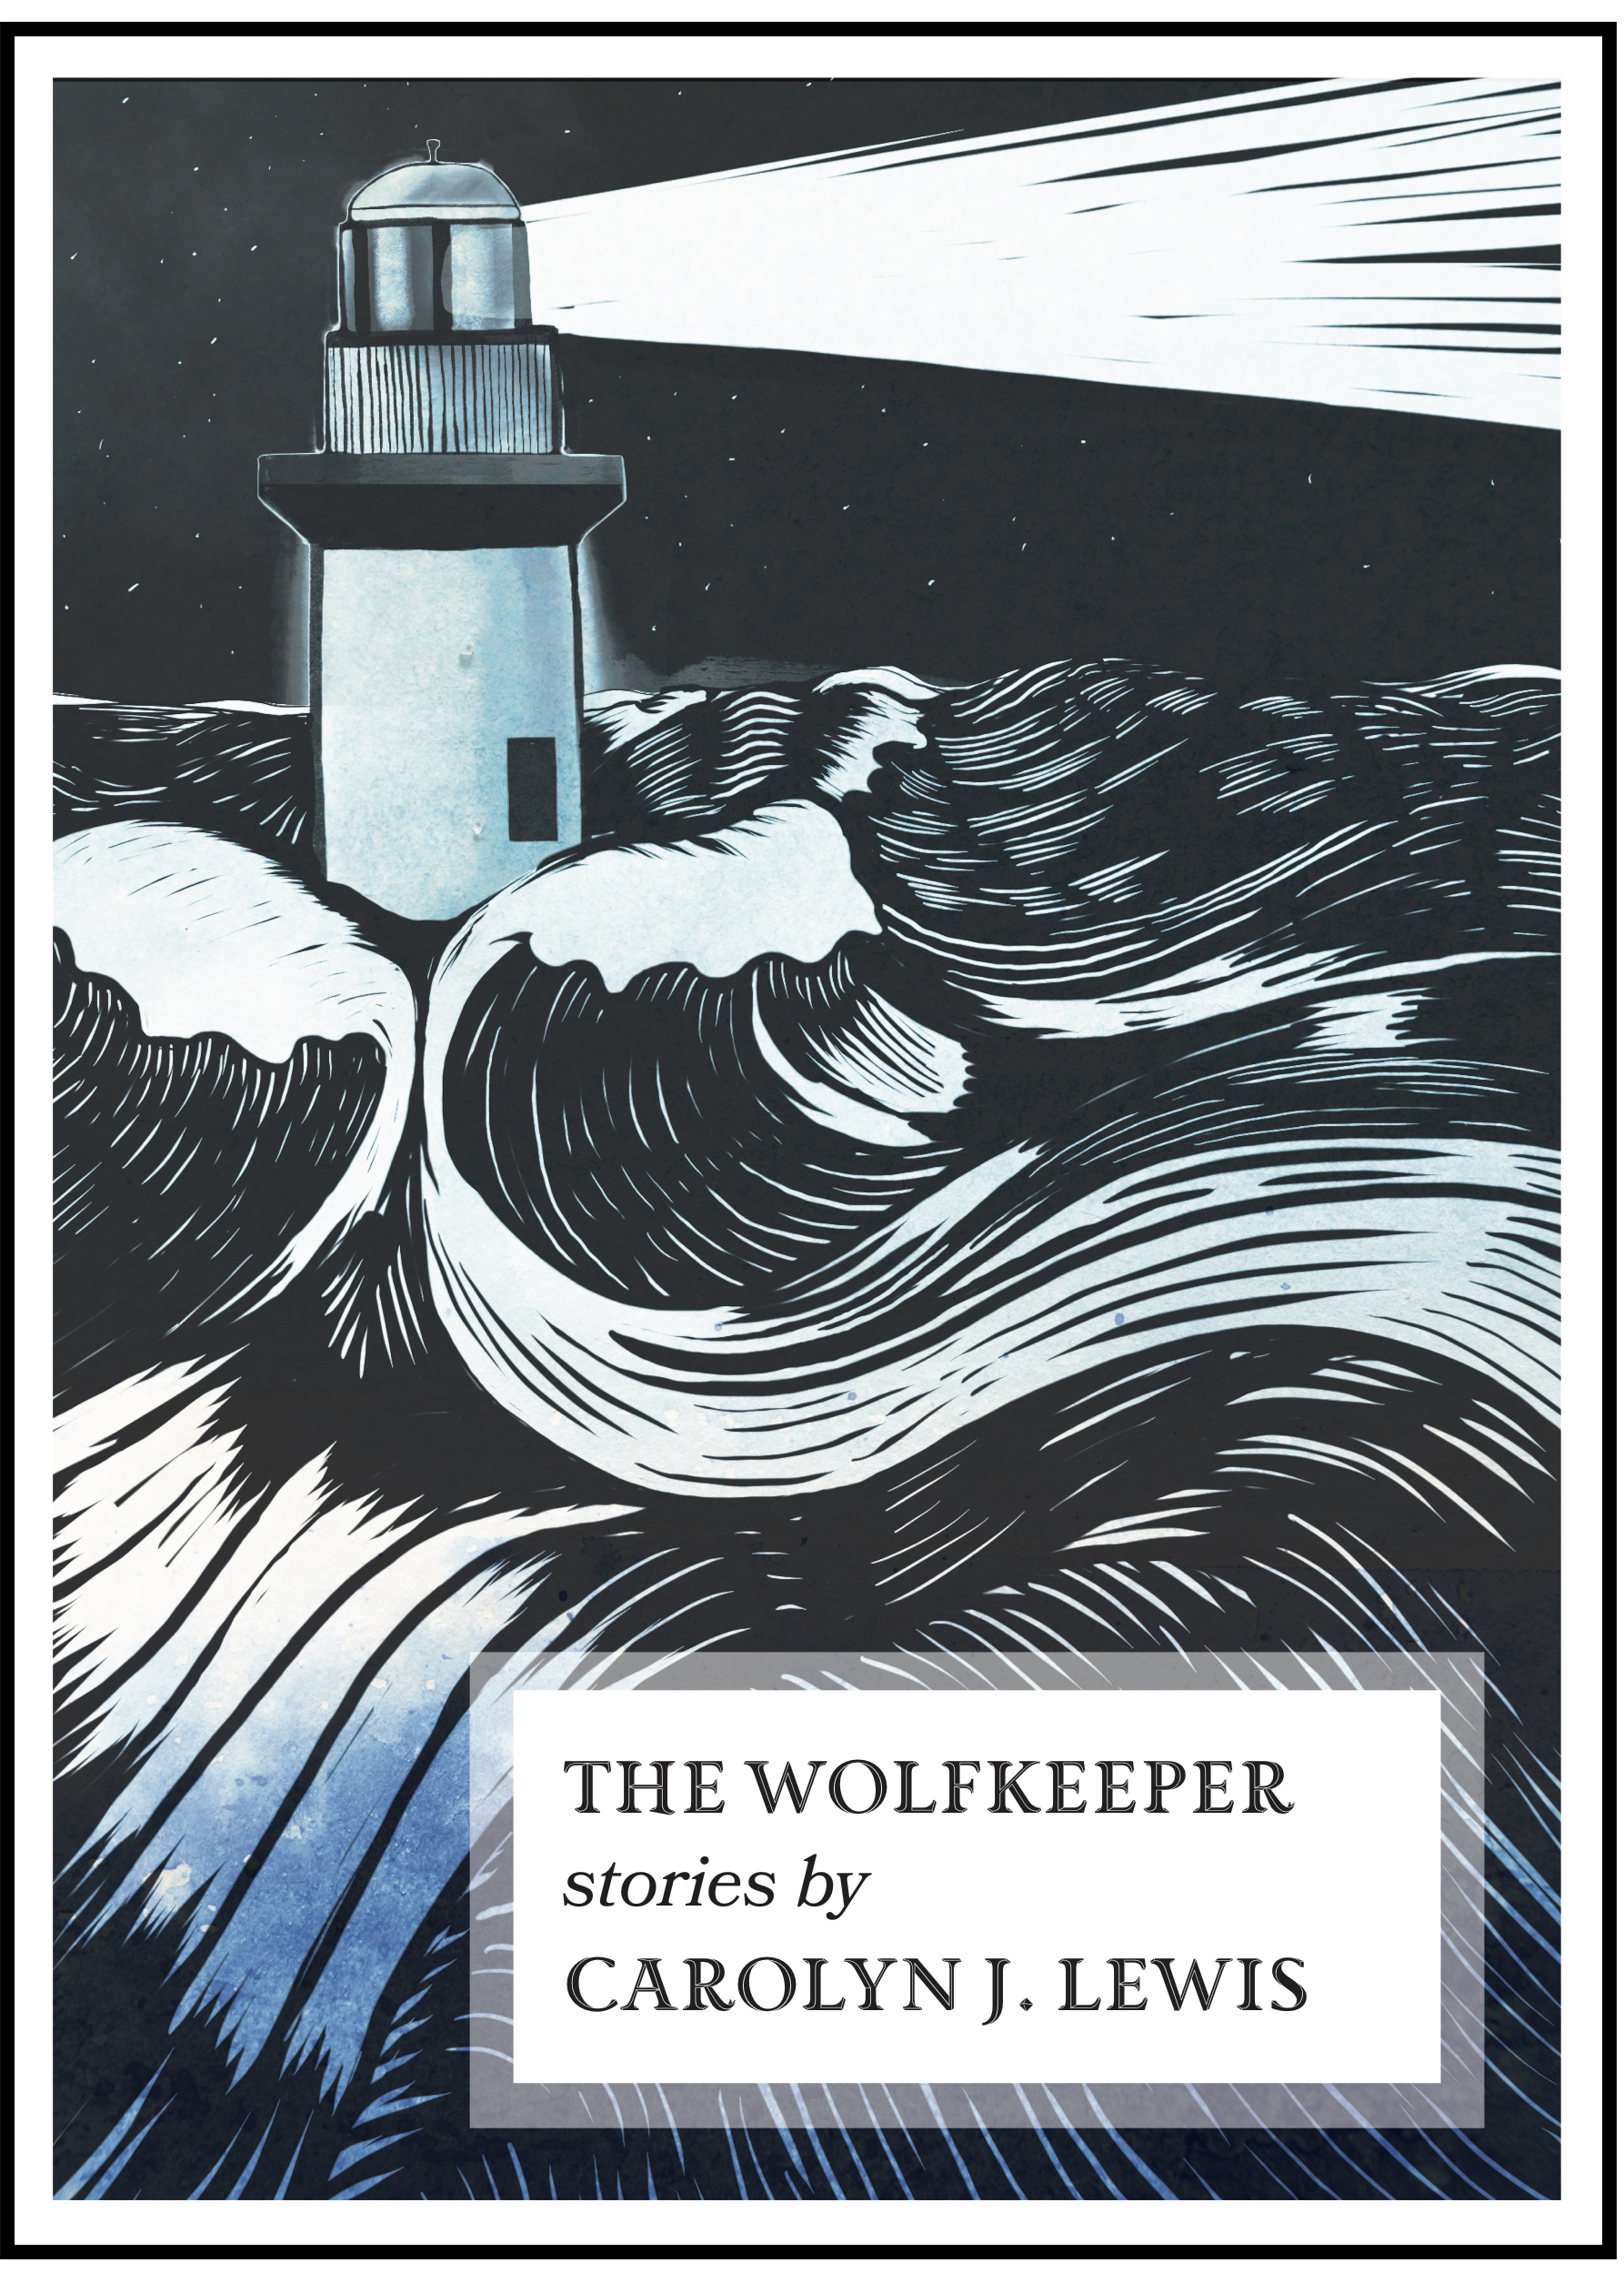 - The Wolfkeeper immerses us into the harshness of northern Michigan winters, the wind howling, the waters surrounding the peninsula covered with ice beneath the swirling snow. They acquaint us with the flora and fauna from the cherry trees and morel mushrooms to wolves, lake trout and salmon.Lewis's prose is a formidable instrument. It can be poetic. Or darkly humorous. Or passionate in a compellingly understated way. This slim volume collects and preserves the work of this gifted writer.More about this authorBuy the book on Amazon